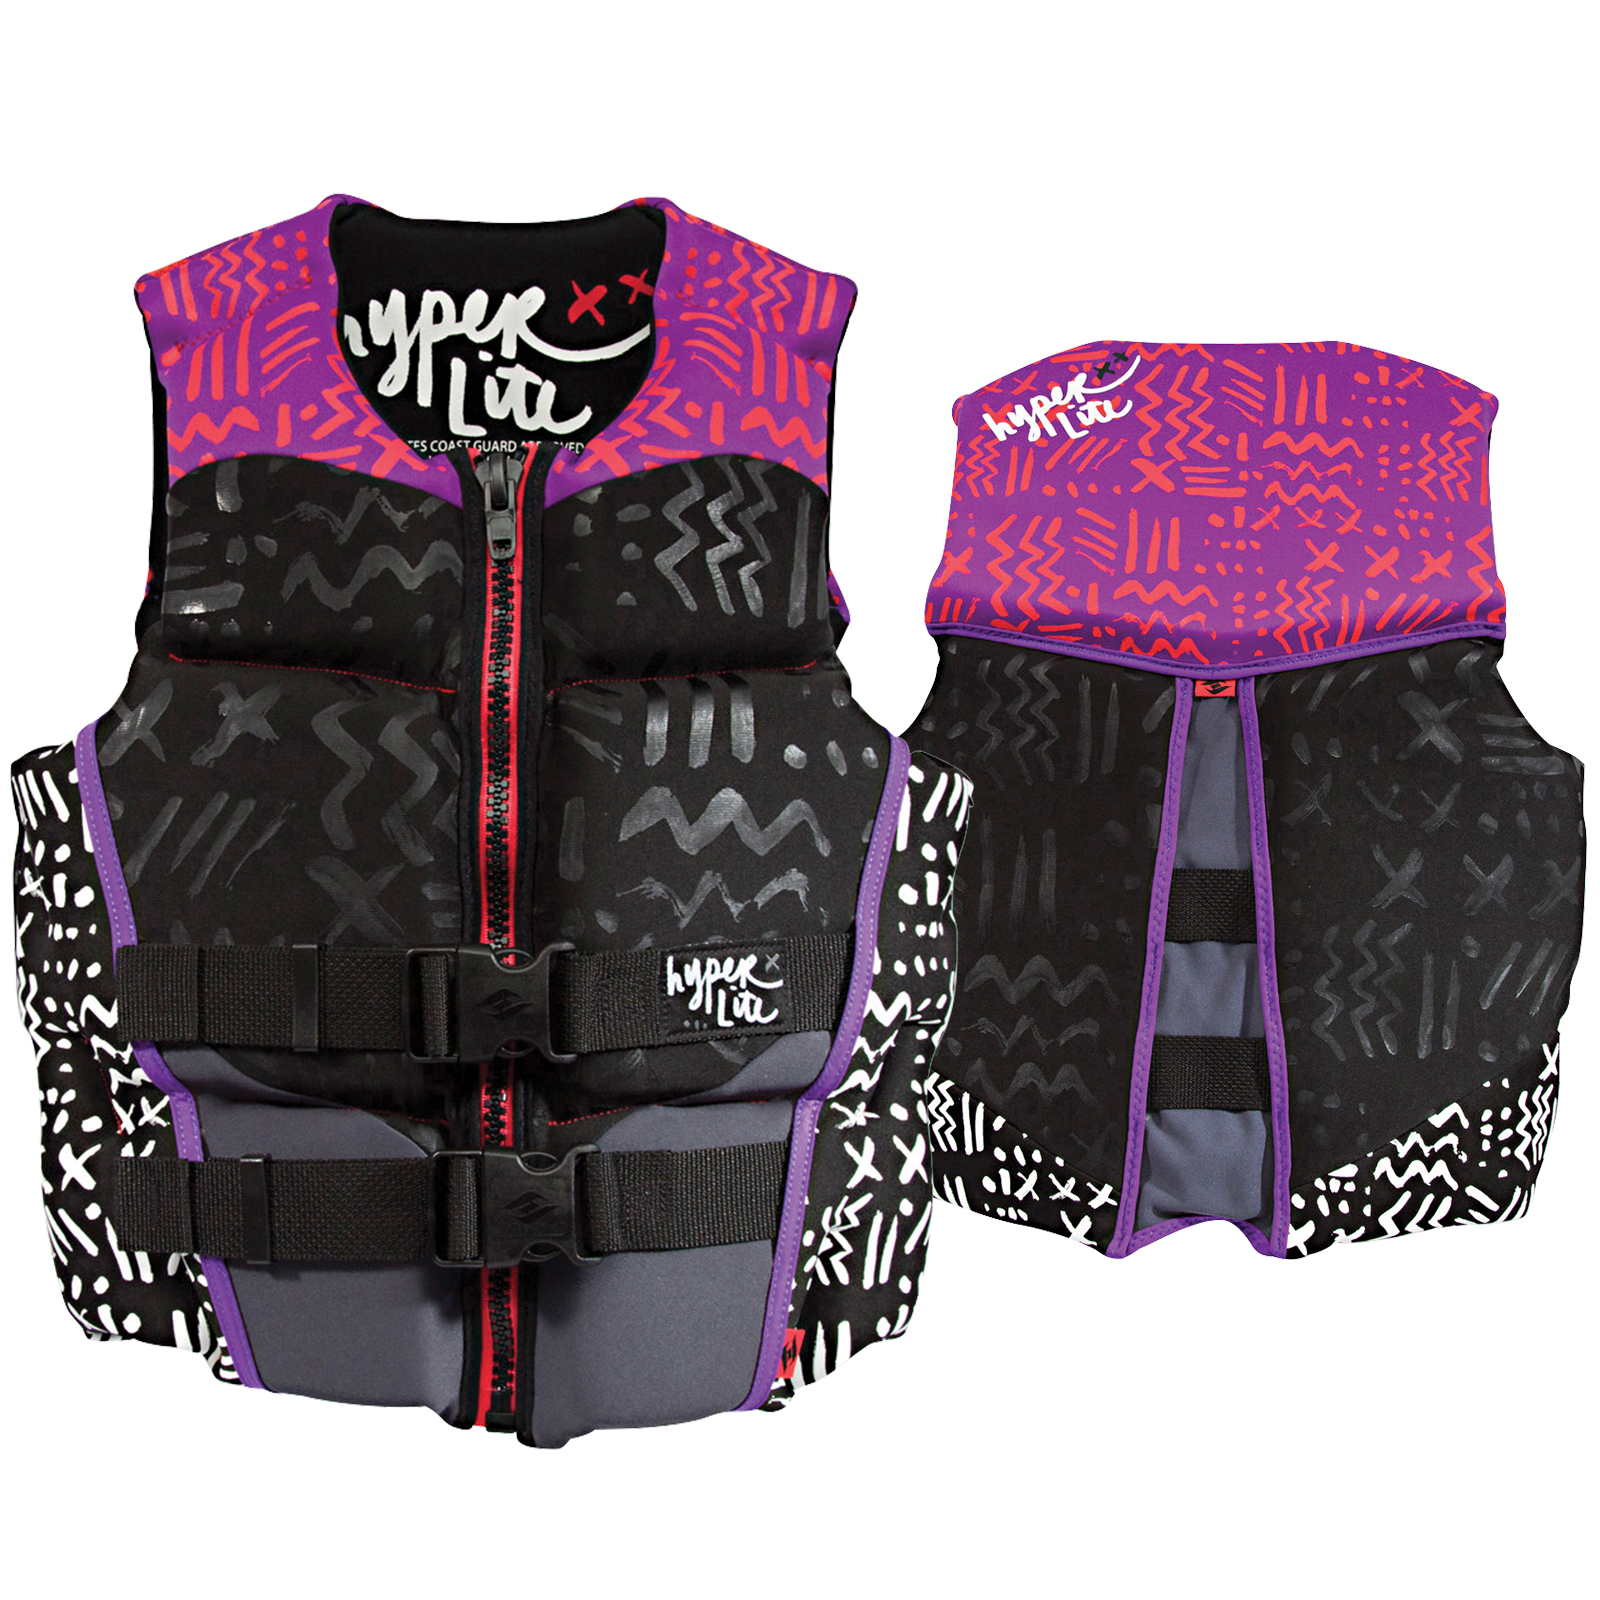 WOMEN'S AMBITION NEO VEST HYPERLITE 2018